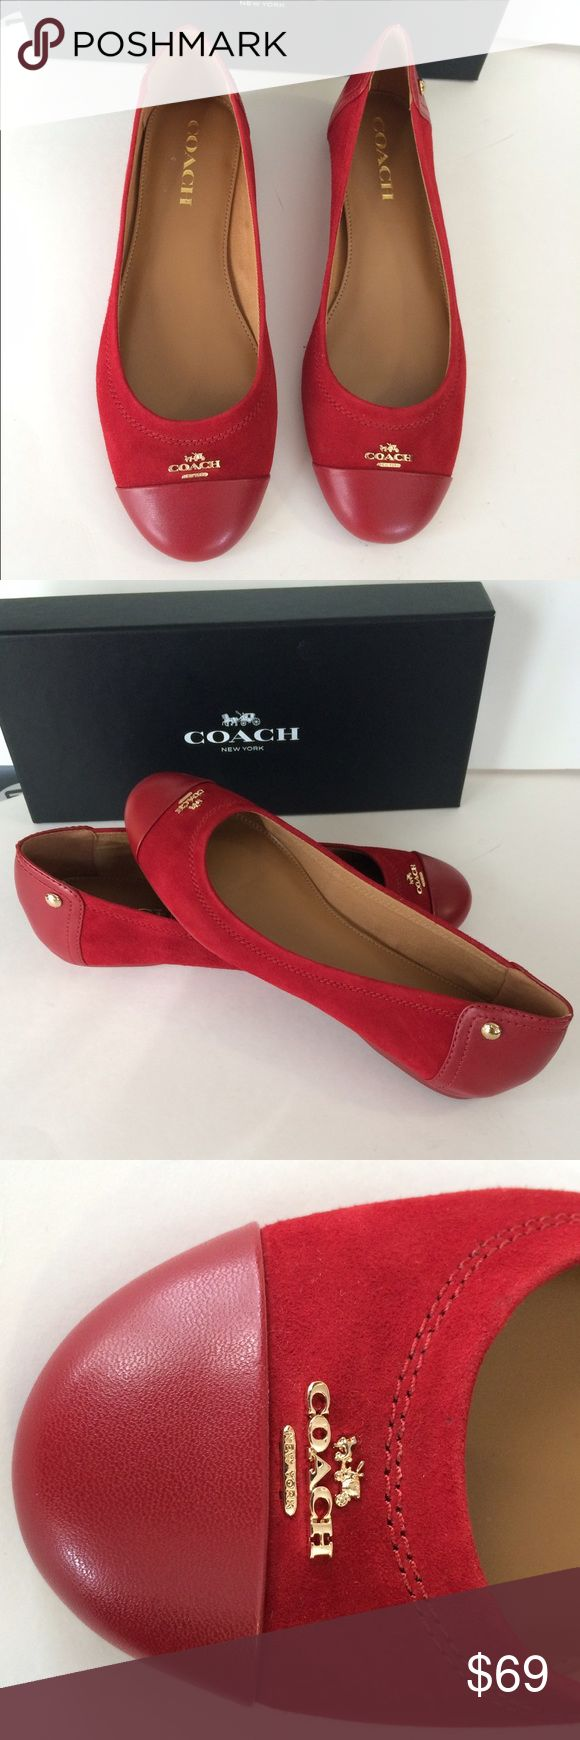 🍒 Coach flat shoes🍒 Comfy, red Leather/suede shoes. Box included Coach Shoes Flats & Loafers